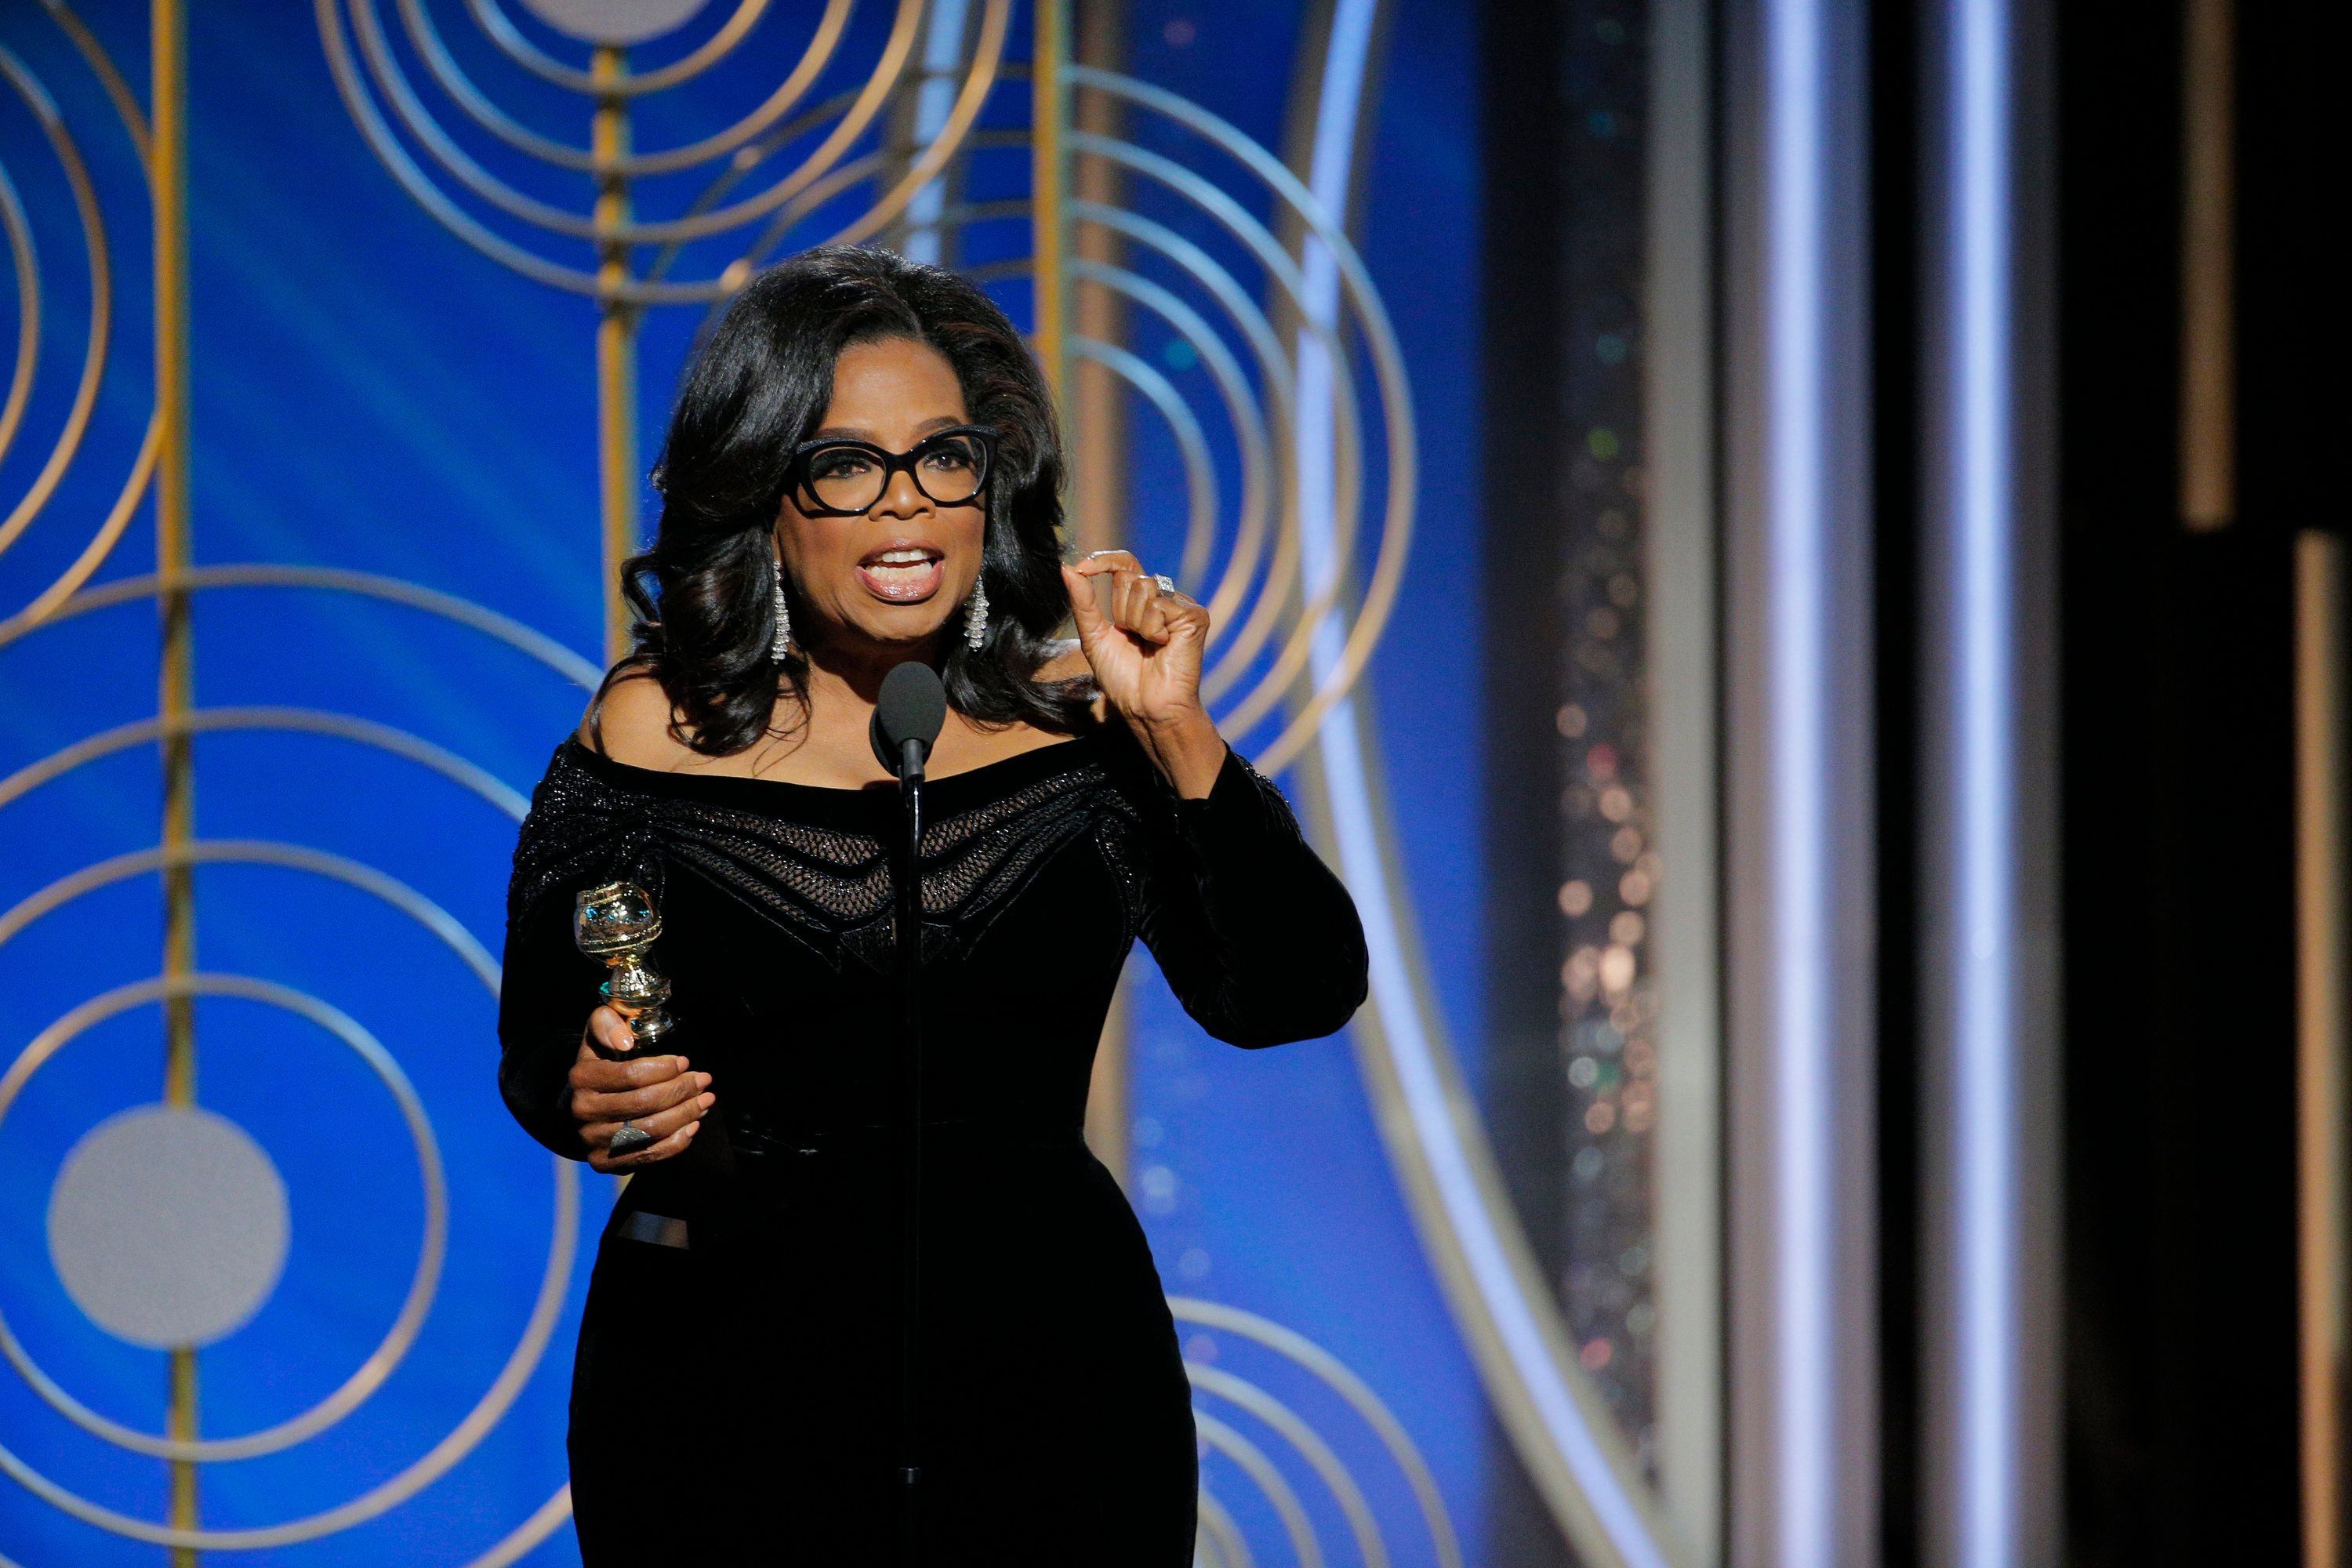 Oprah Calls For Day When No One Has To Say 'Me Too' During Golden Globes Speech